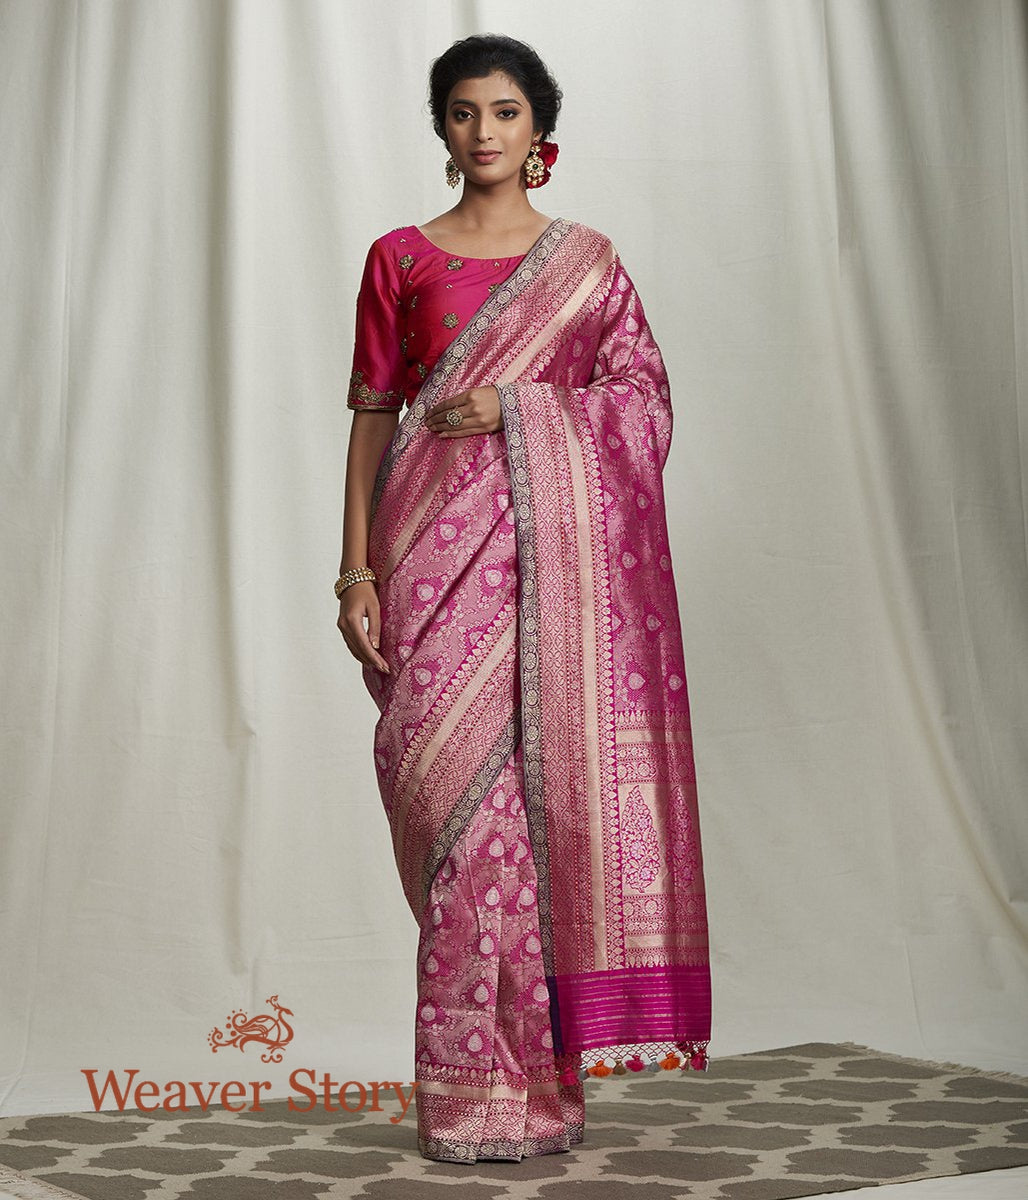 Handwoven Pink Zari Kimkhab Saree with Meenakari Border